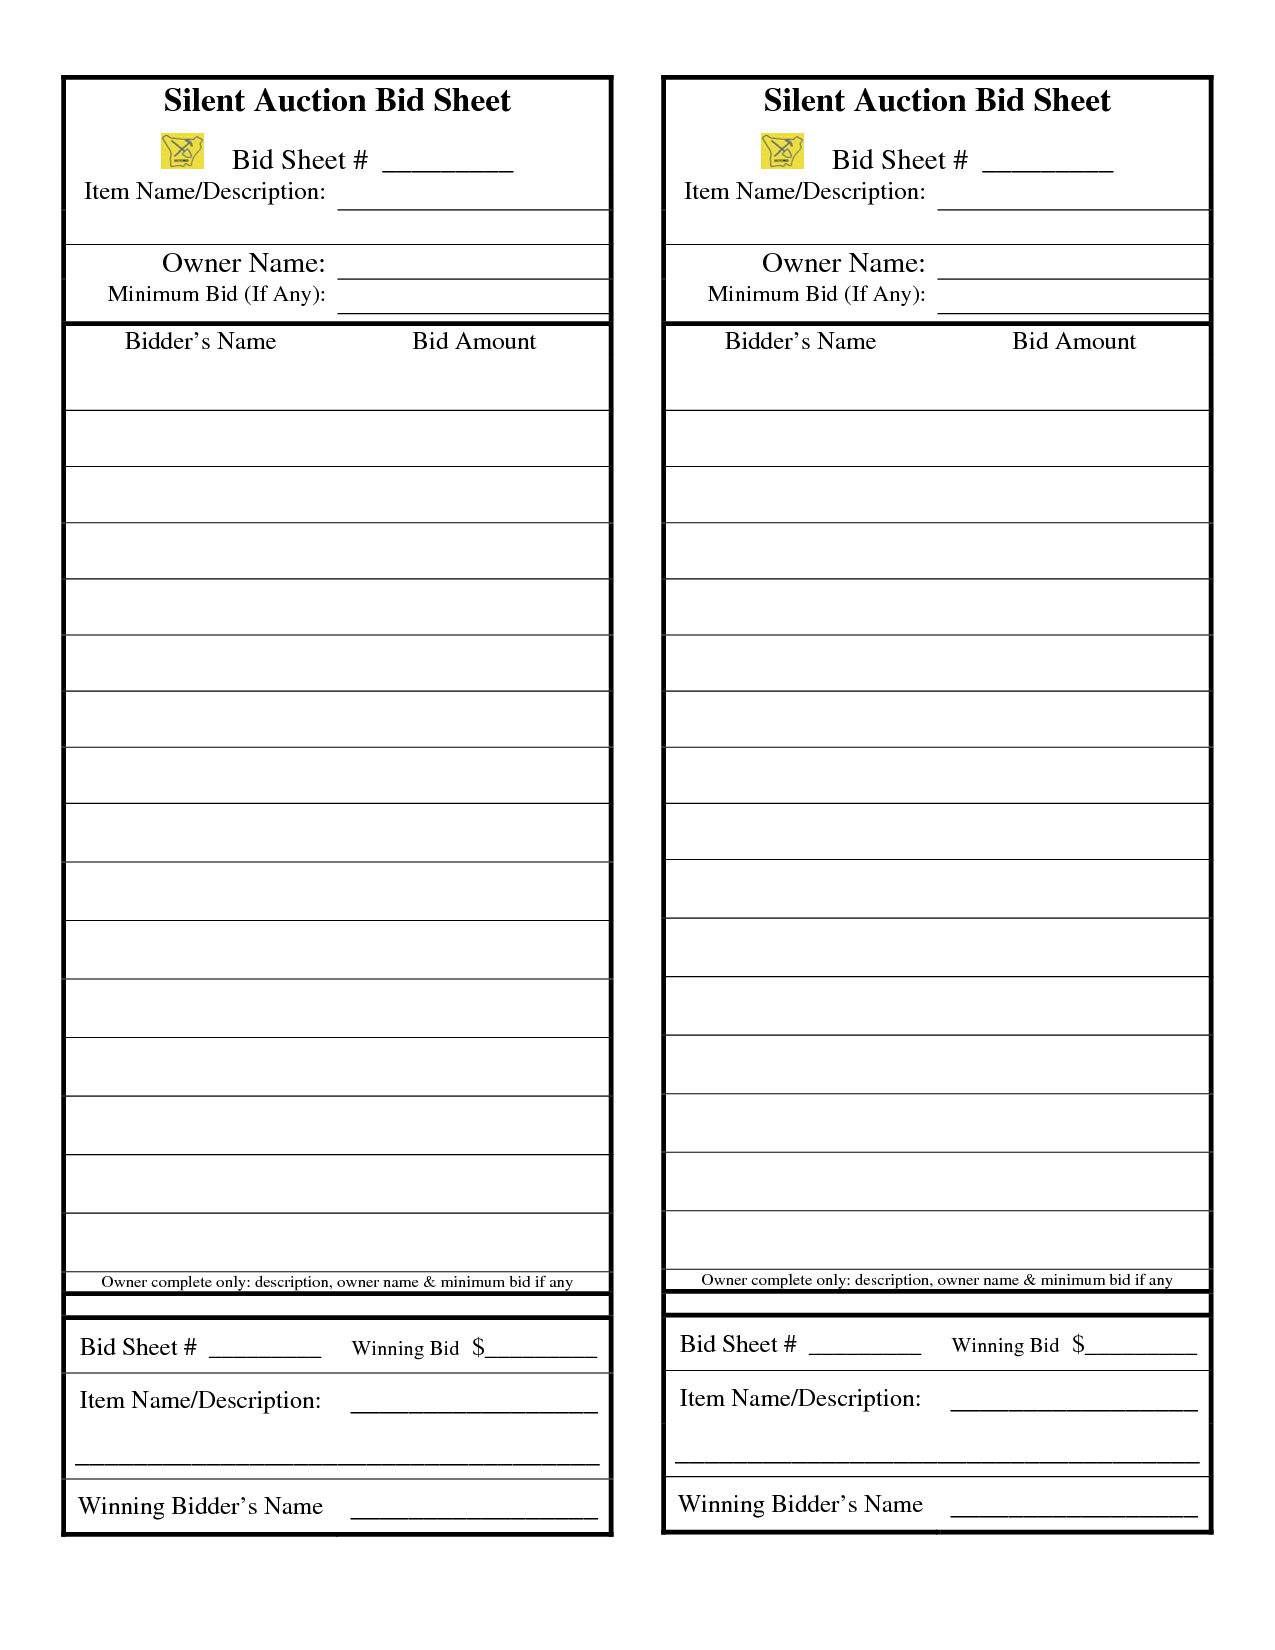 24 Awesome Sample Silent Auction Bid Sheet Images | Silent Auction - Free Printable Silent Auction Bid Sheets